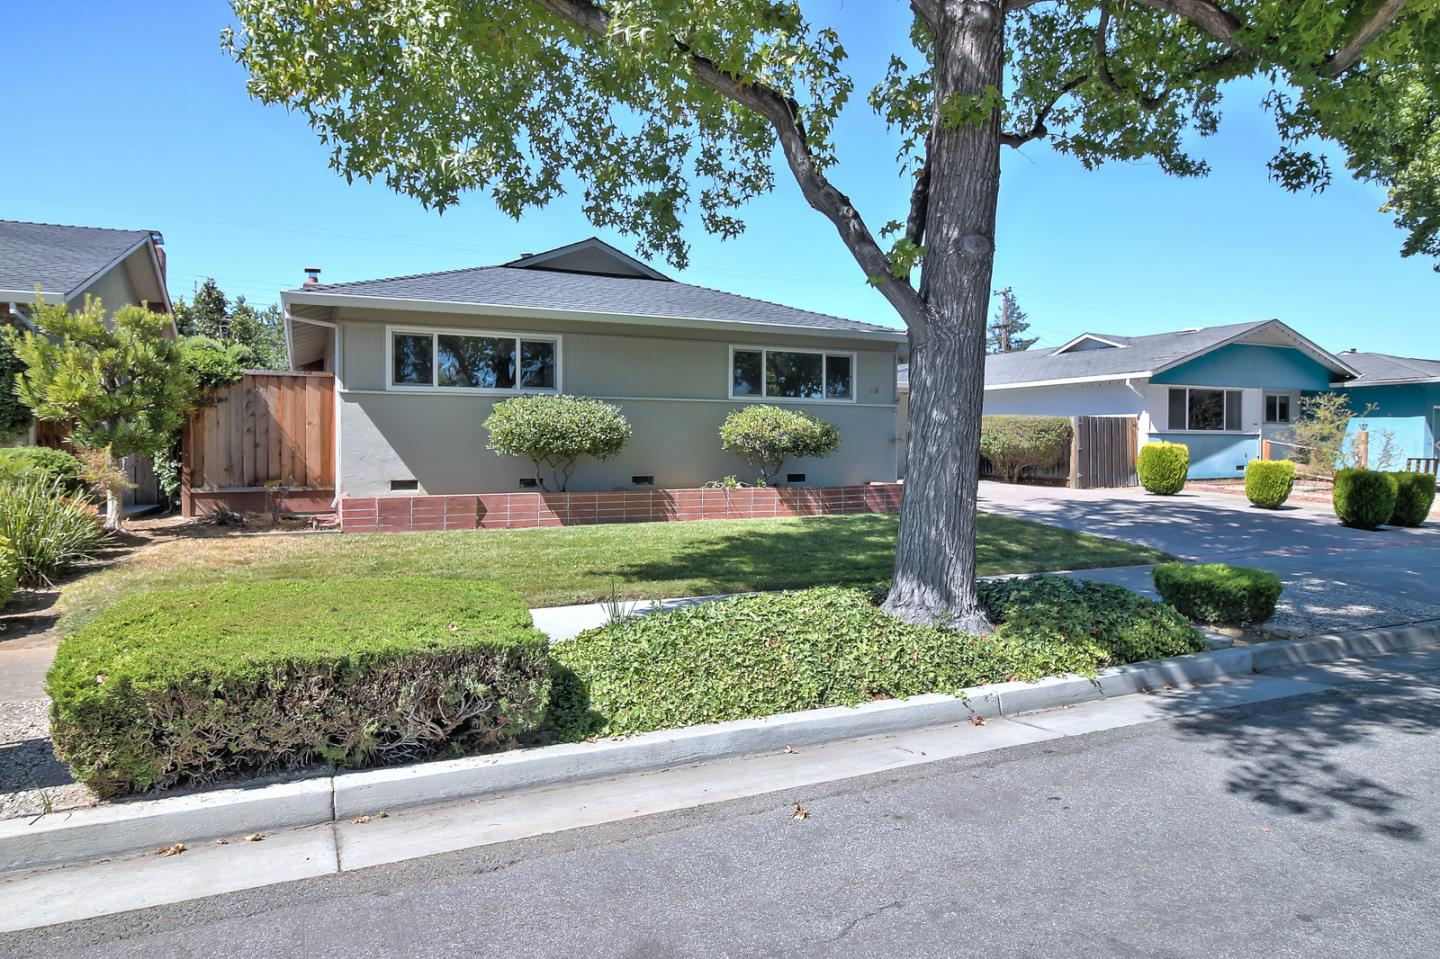 Additional photo for property listing at 805 Fife Way  Sunnyvale, California 94087 United States